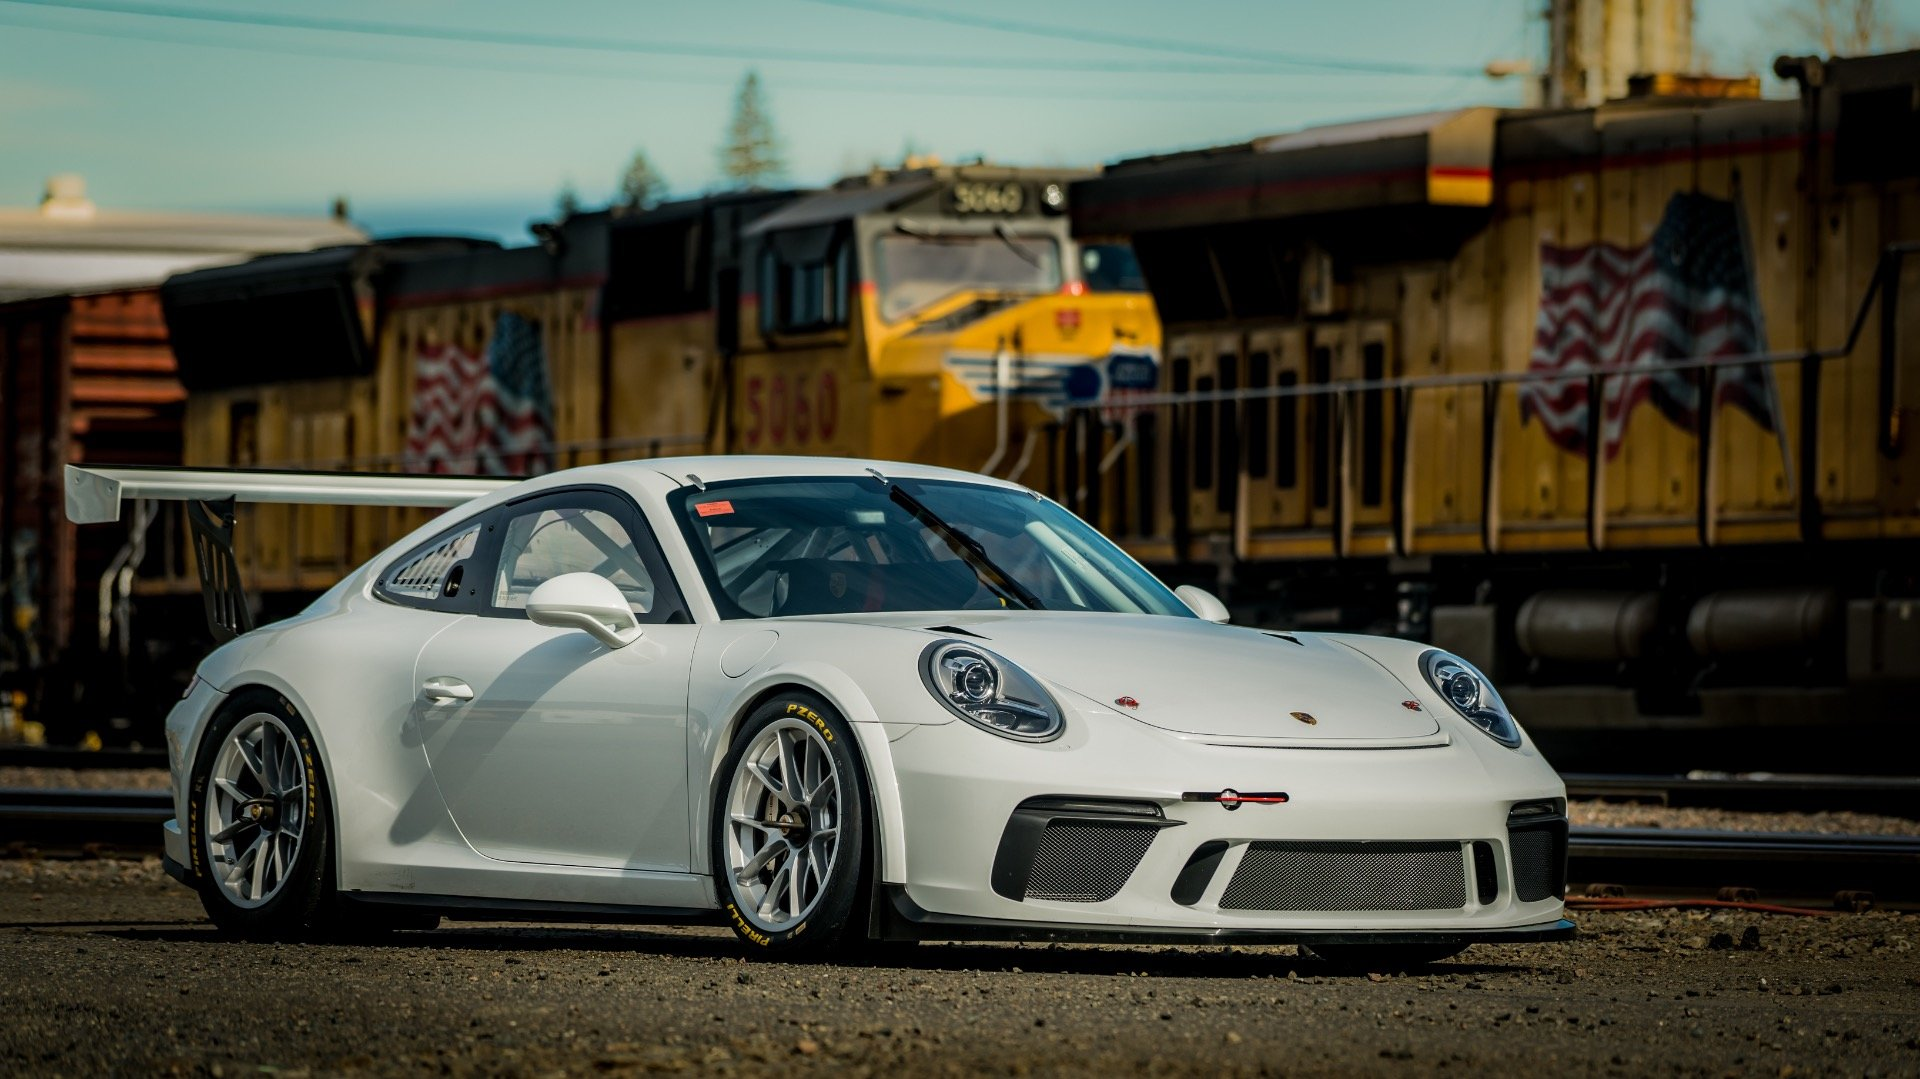 2018 Porsche GT3 Cup Car Race Car only 10 hours Spares $265k For Sale (picture 1 of 6)